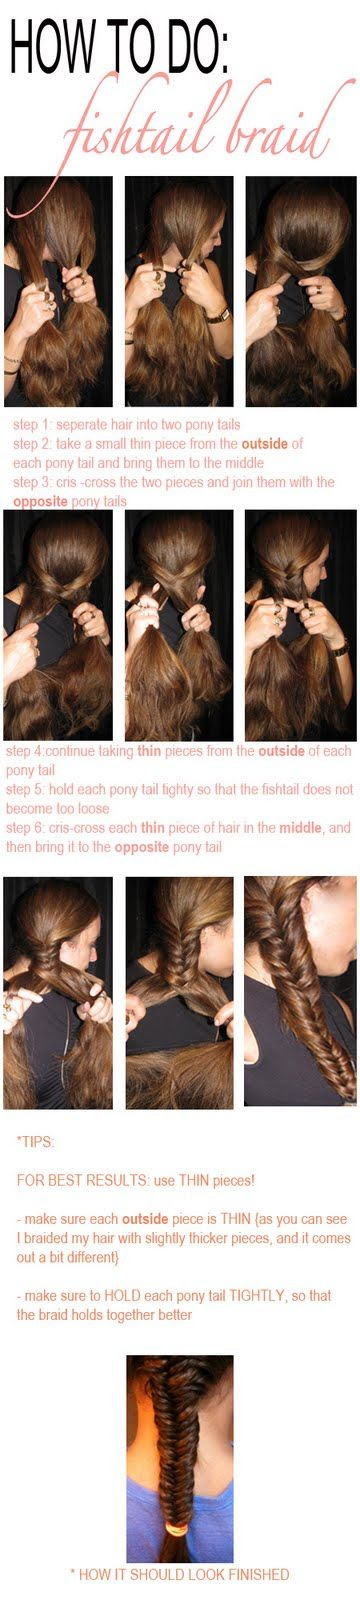 fish tail braid - diy